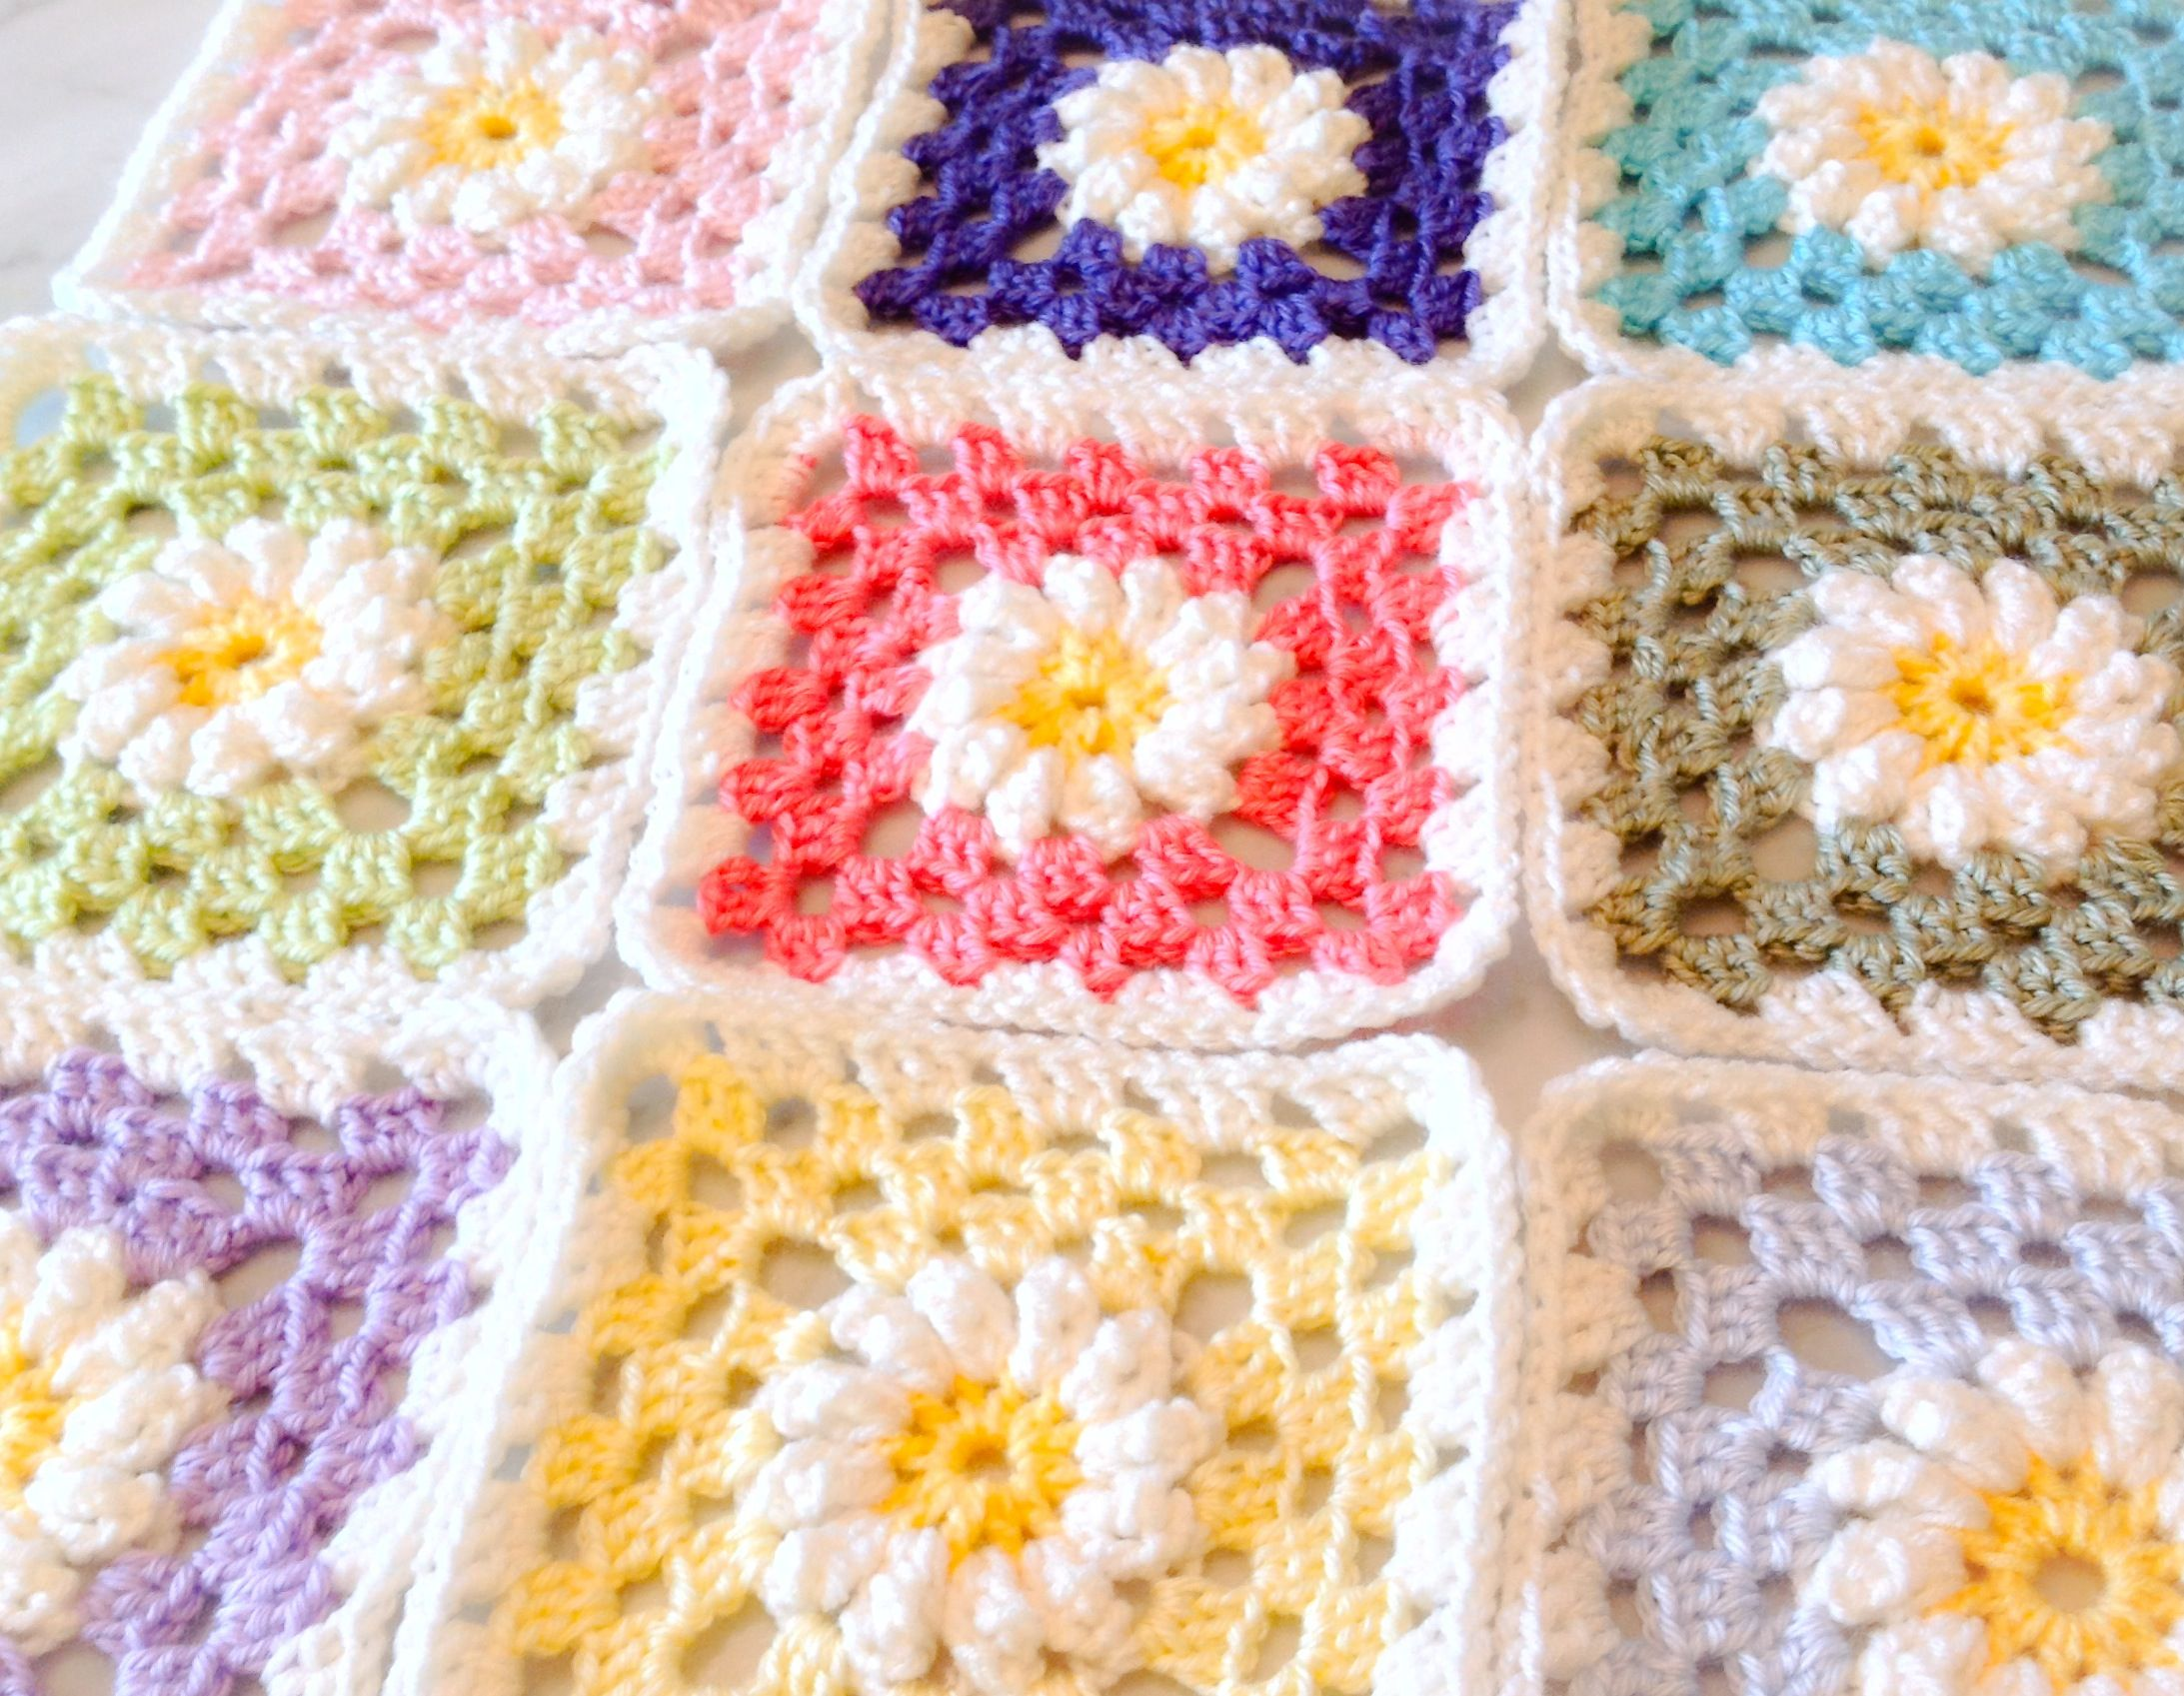 Crocheted Daisy granny squares pattern for blanket. | crafts and ...